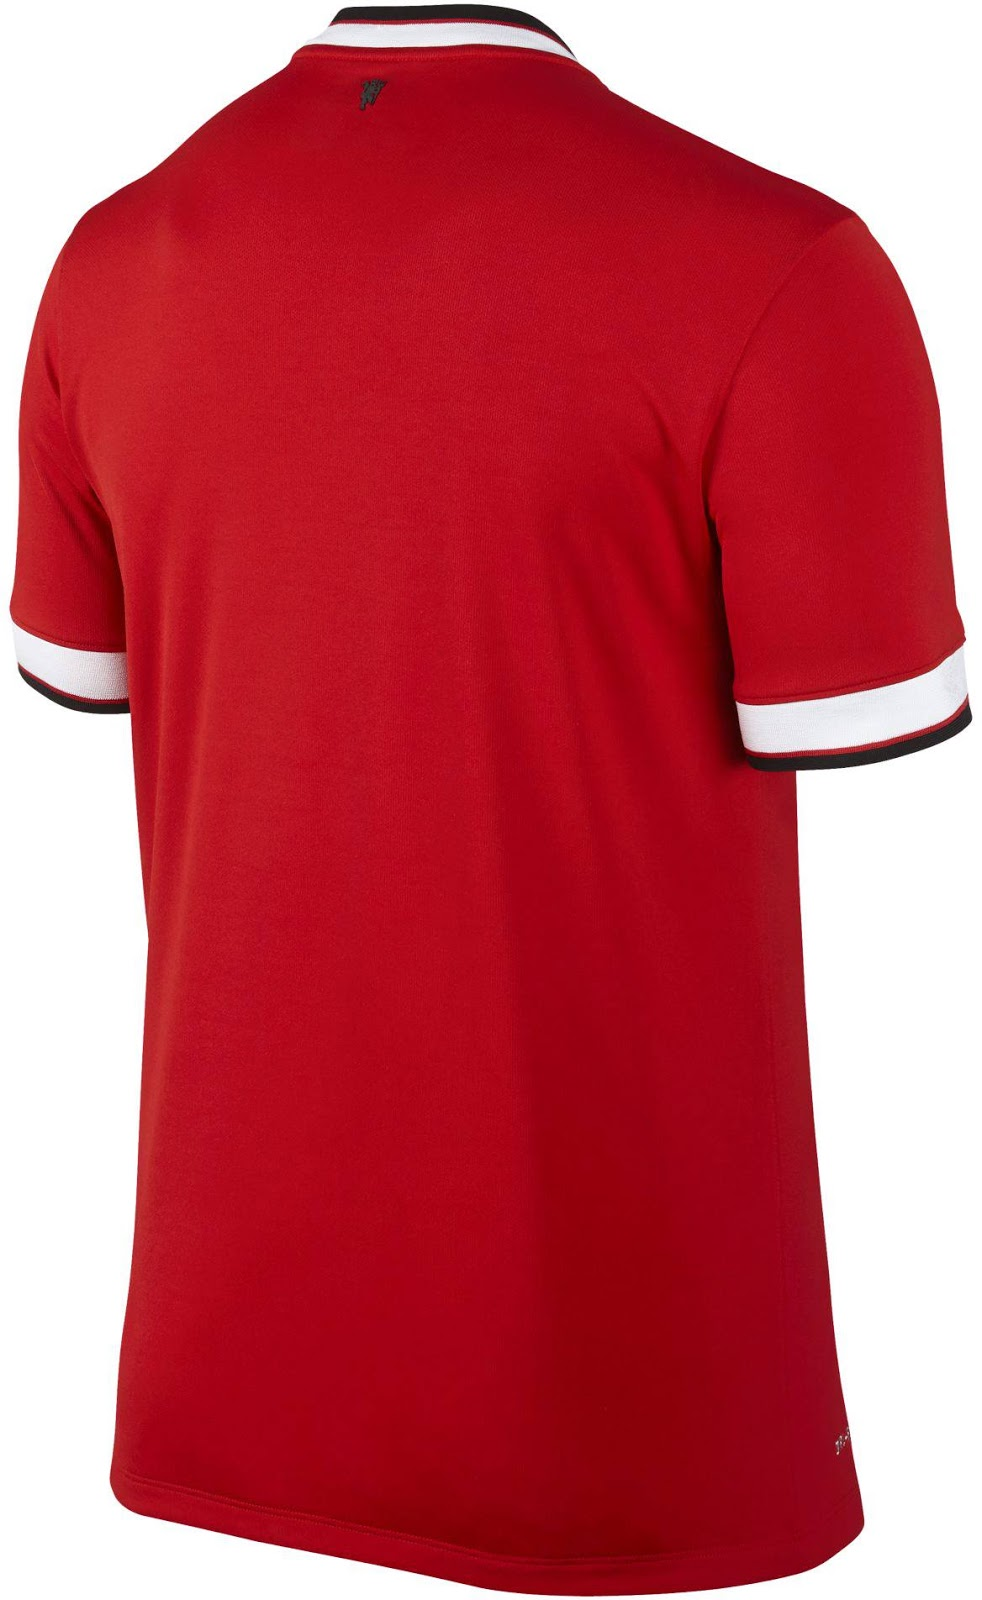 Manchester United 14-15 Home, Away and Third Kits